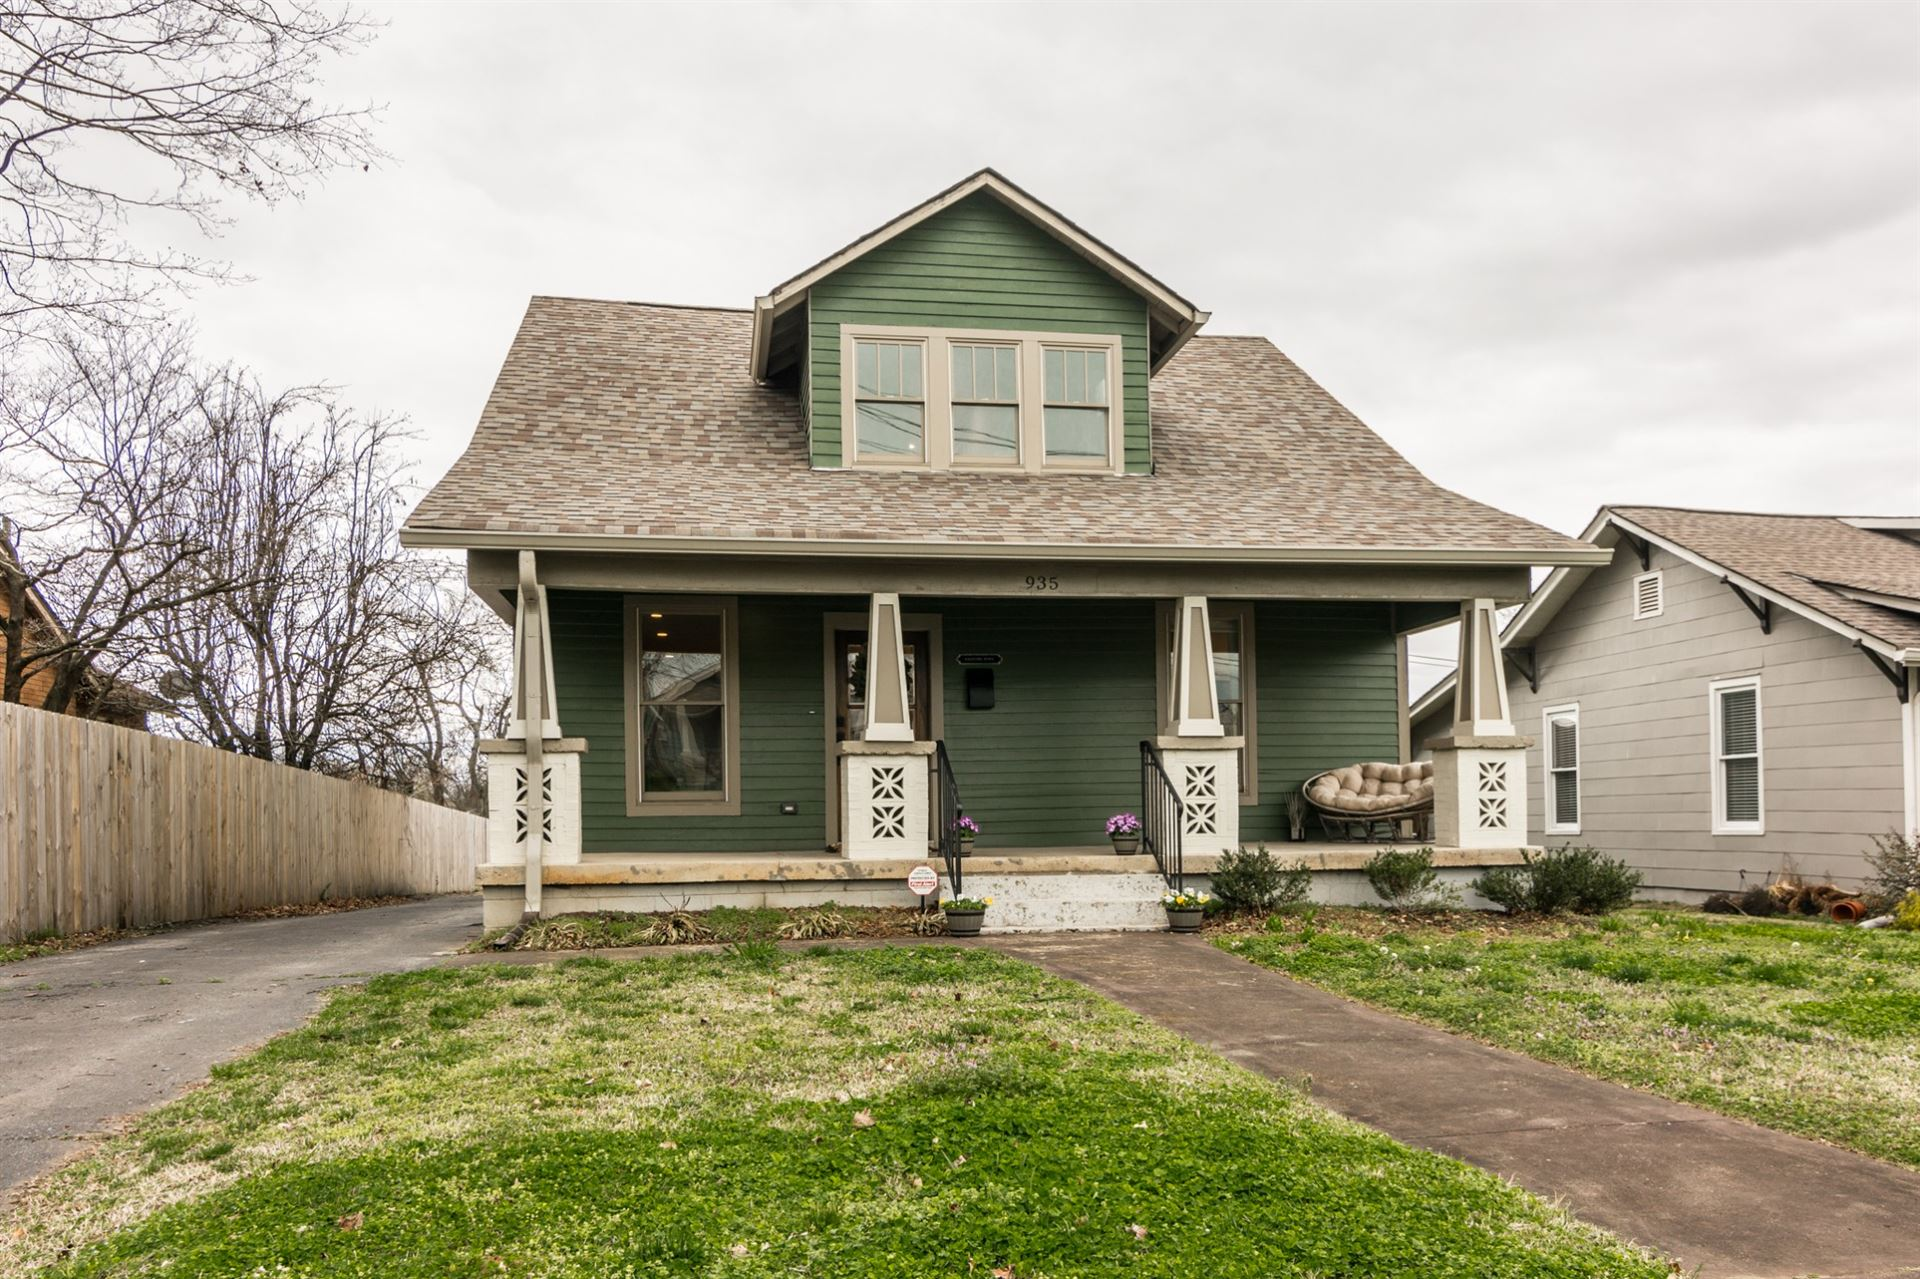 Photo of 935 Silverdene Pl, Nashville, TN 37206 (MLS # 2239709)